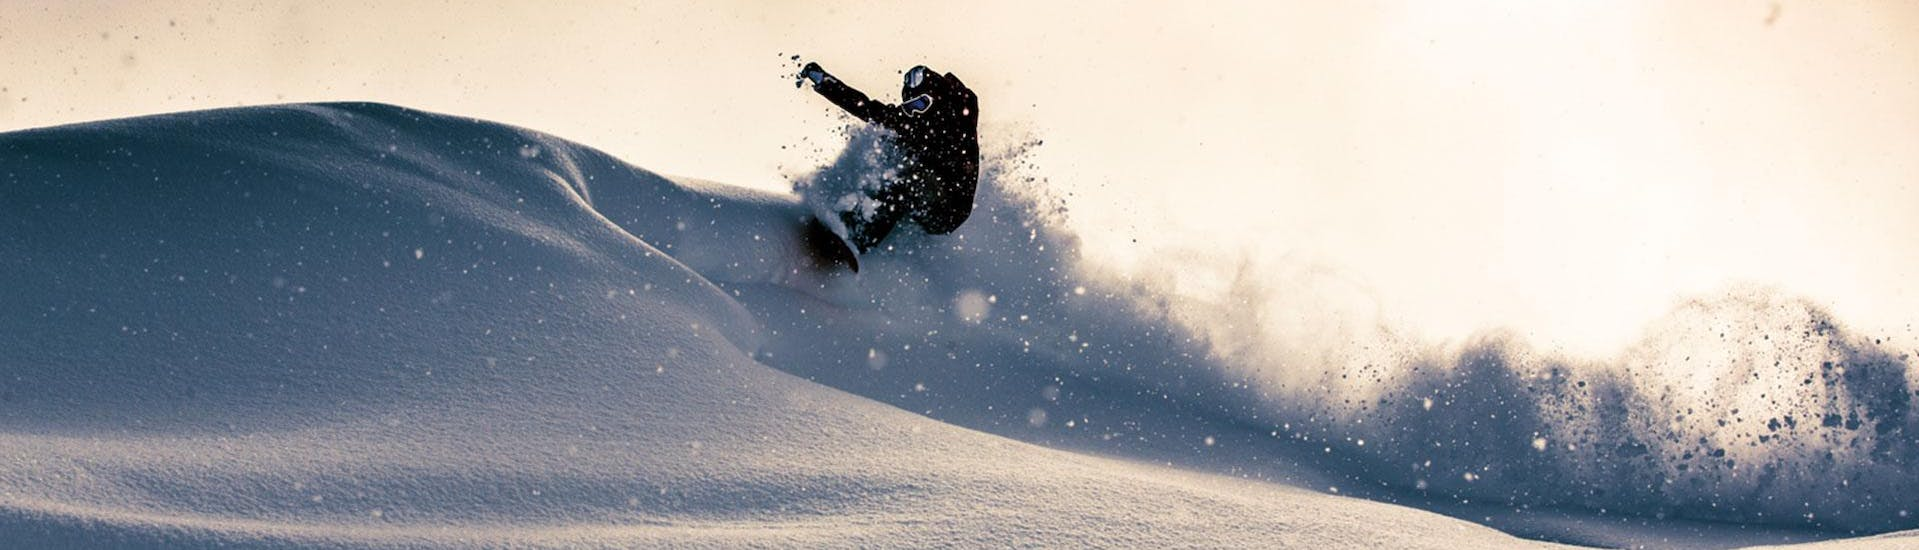 """A snowboarder is riding through deep powder snow during his Off-Piste Snowboarding Lessons """"Package"""" - All Levels with BOARD.AT."""